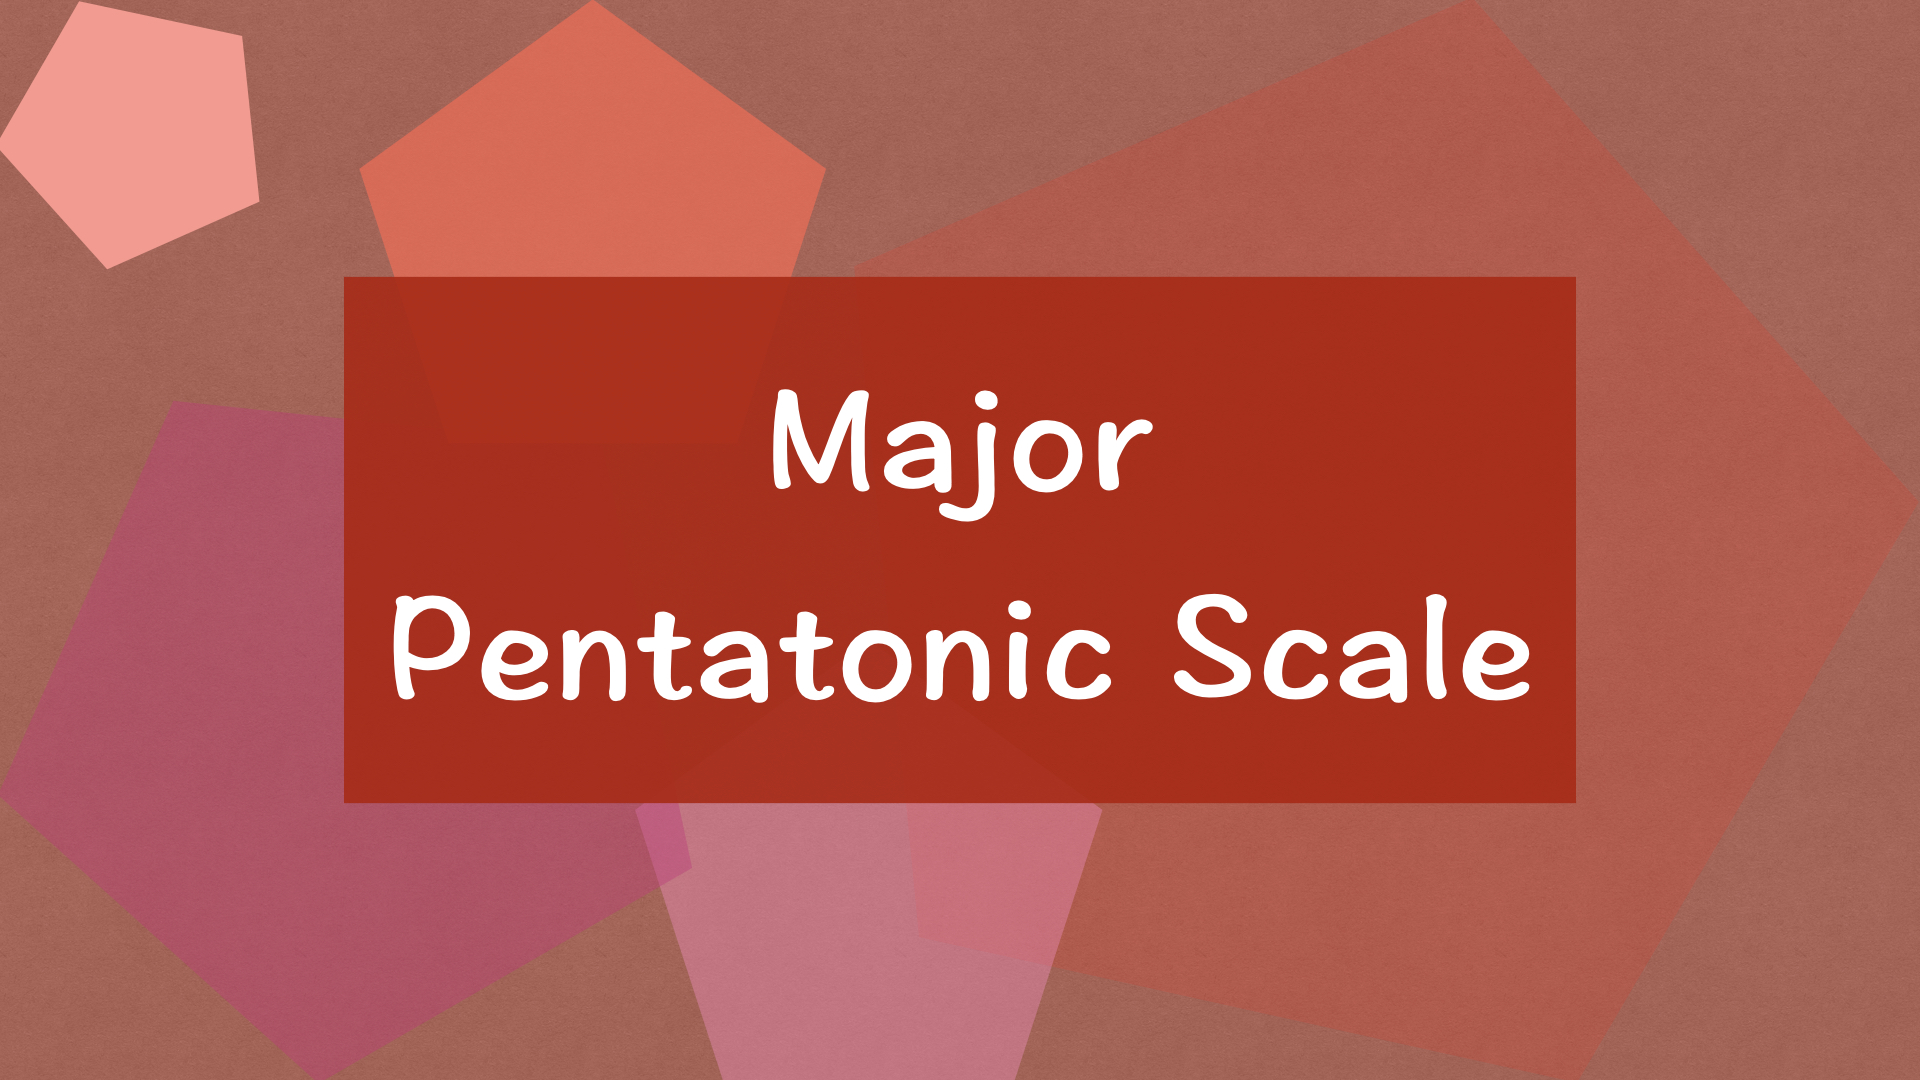 major pentatonic